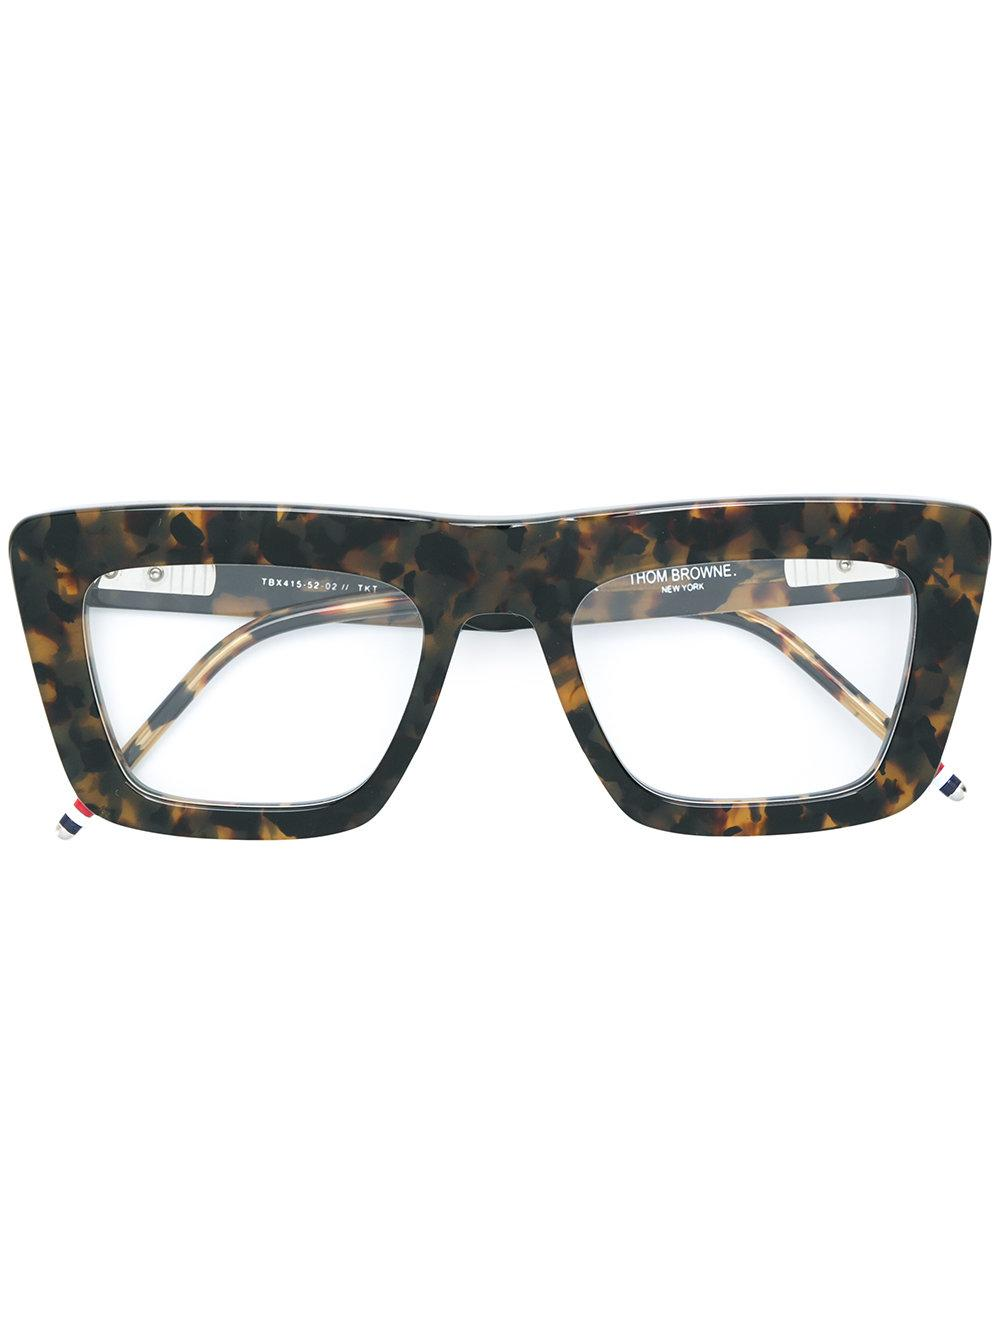 e531300dcb0 Thom Browne Square Frame Glasses